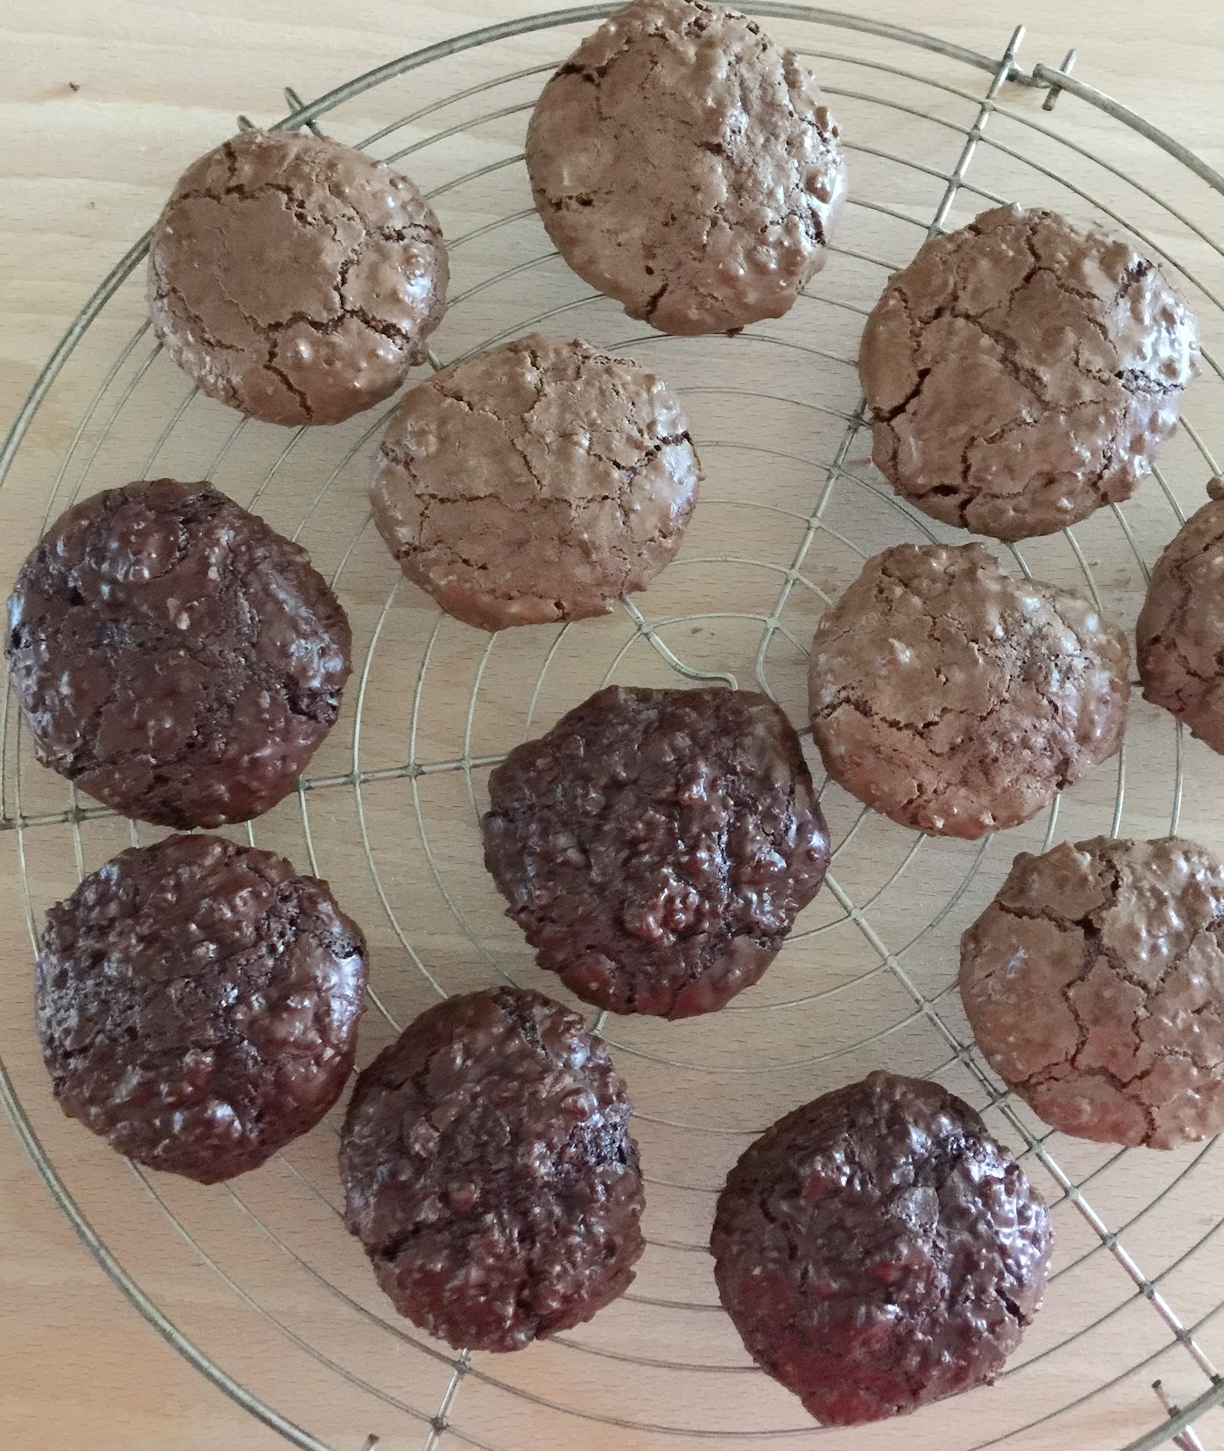 The darker cookies were made with Cacao di Pernigotti. The lighter ones with Ghirardelli.